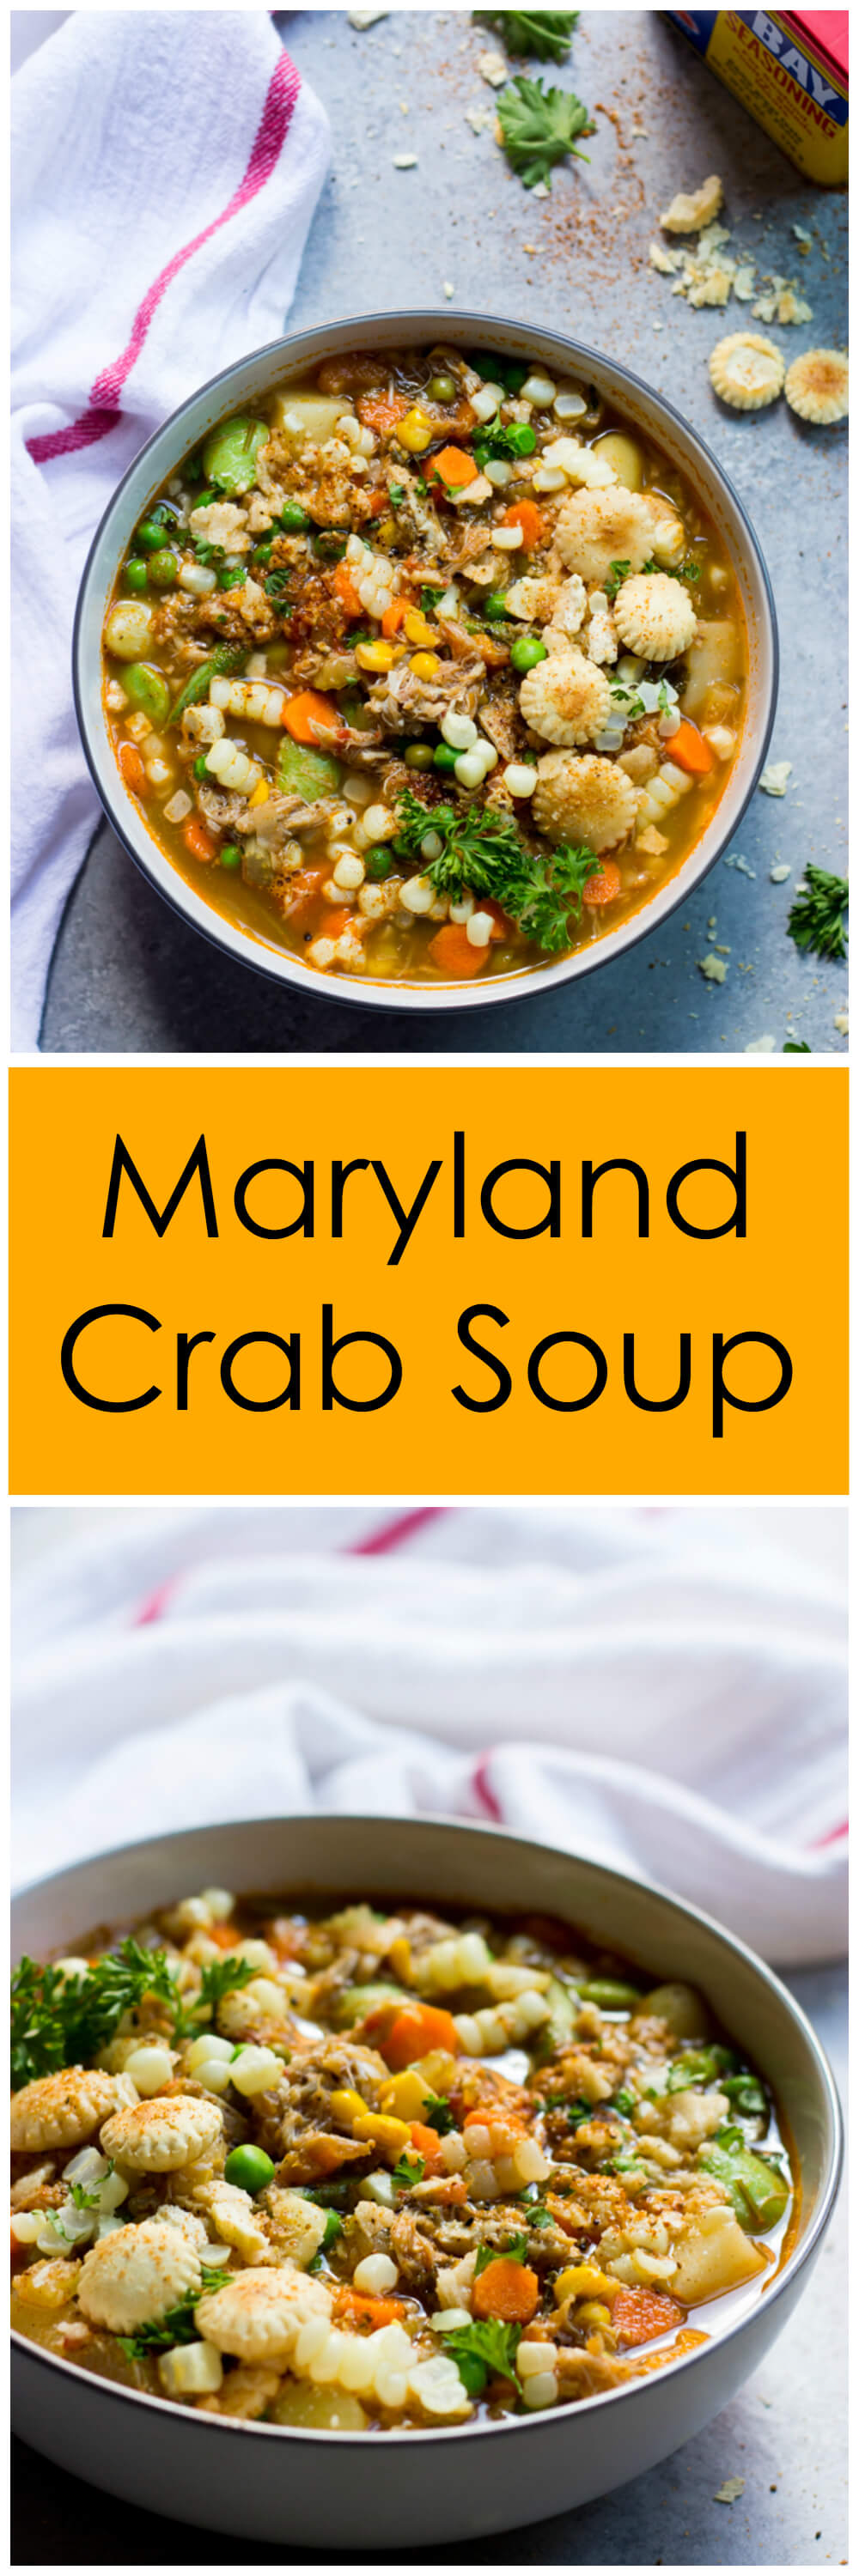 Maryland Crab Soup - hearty farmers market vegetables, lumps of crab meat, and spicy Old Bay seasoning | littlebroken.com @littlebroken